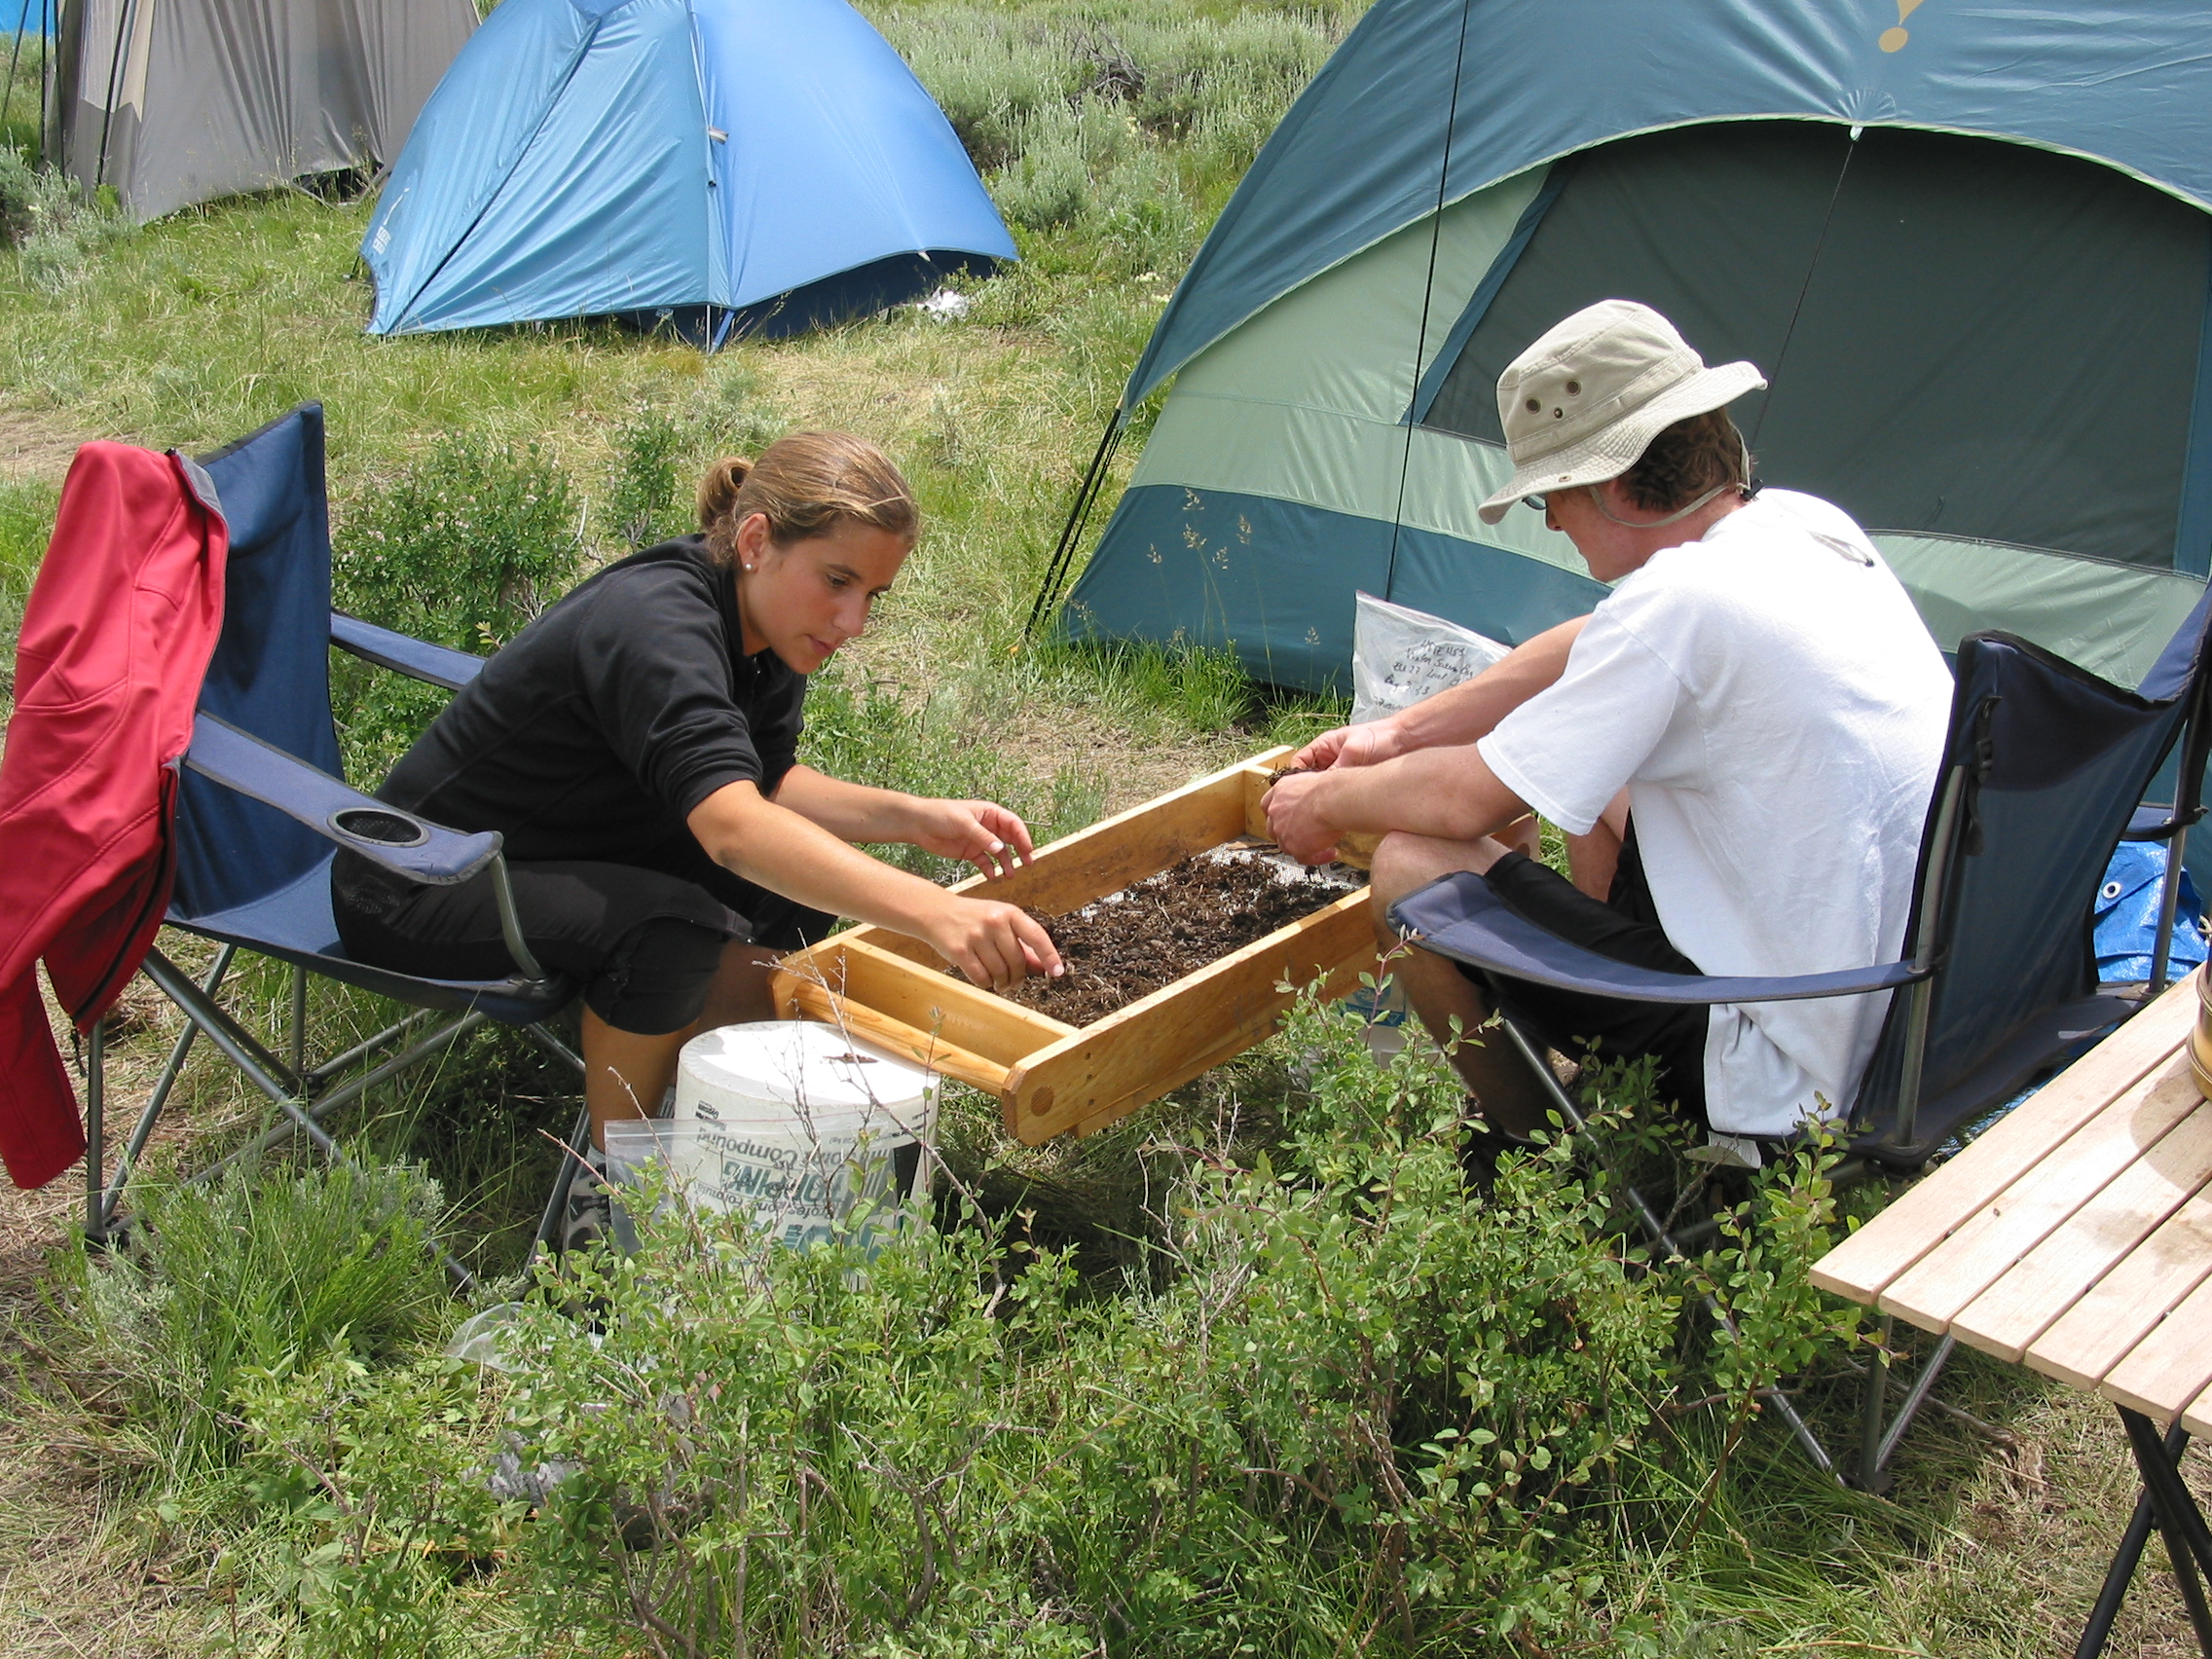 research expeditions archives moral compass great places to go earthwatch institute enables ordinary people to work alongside scientists in 2013 earthwatch scientists and